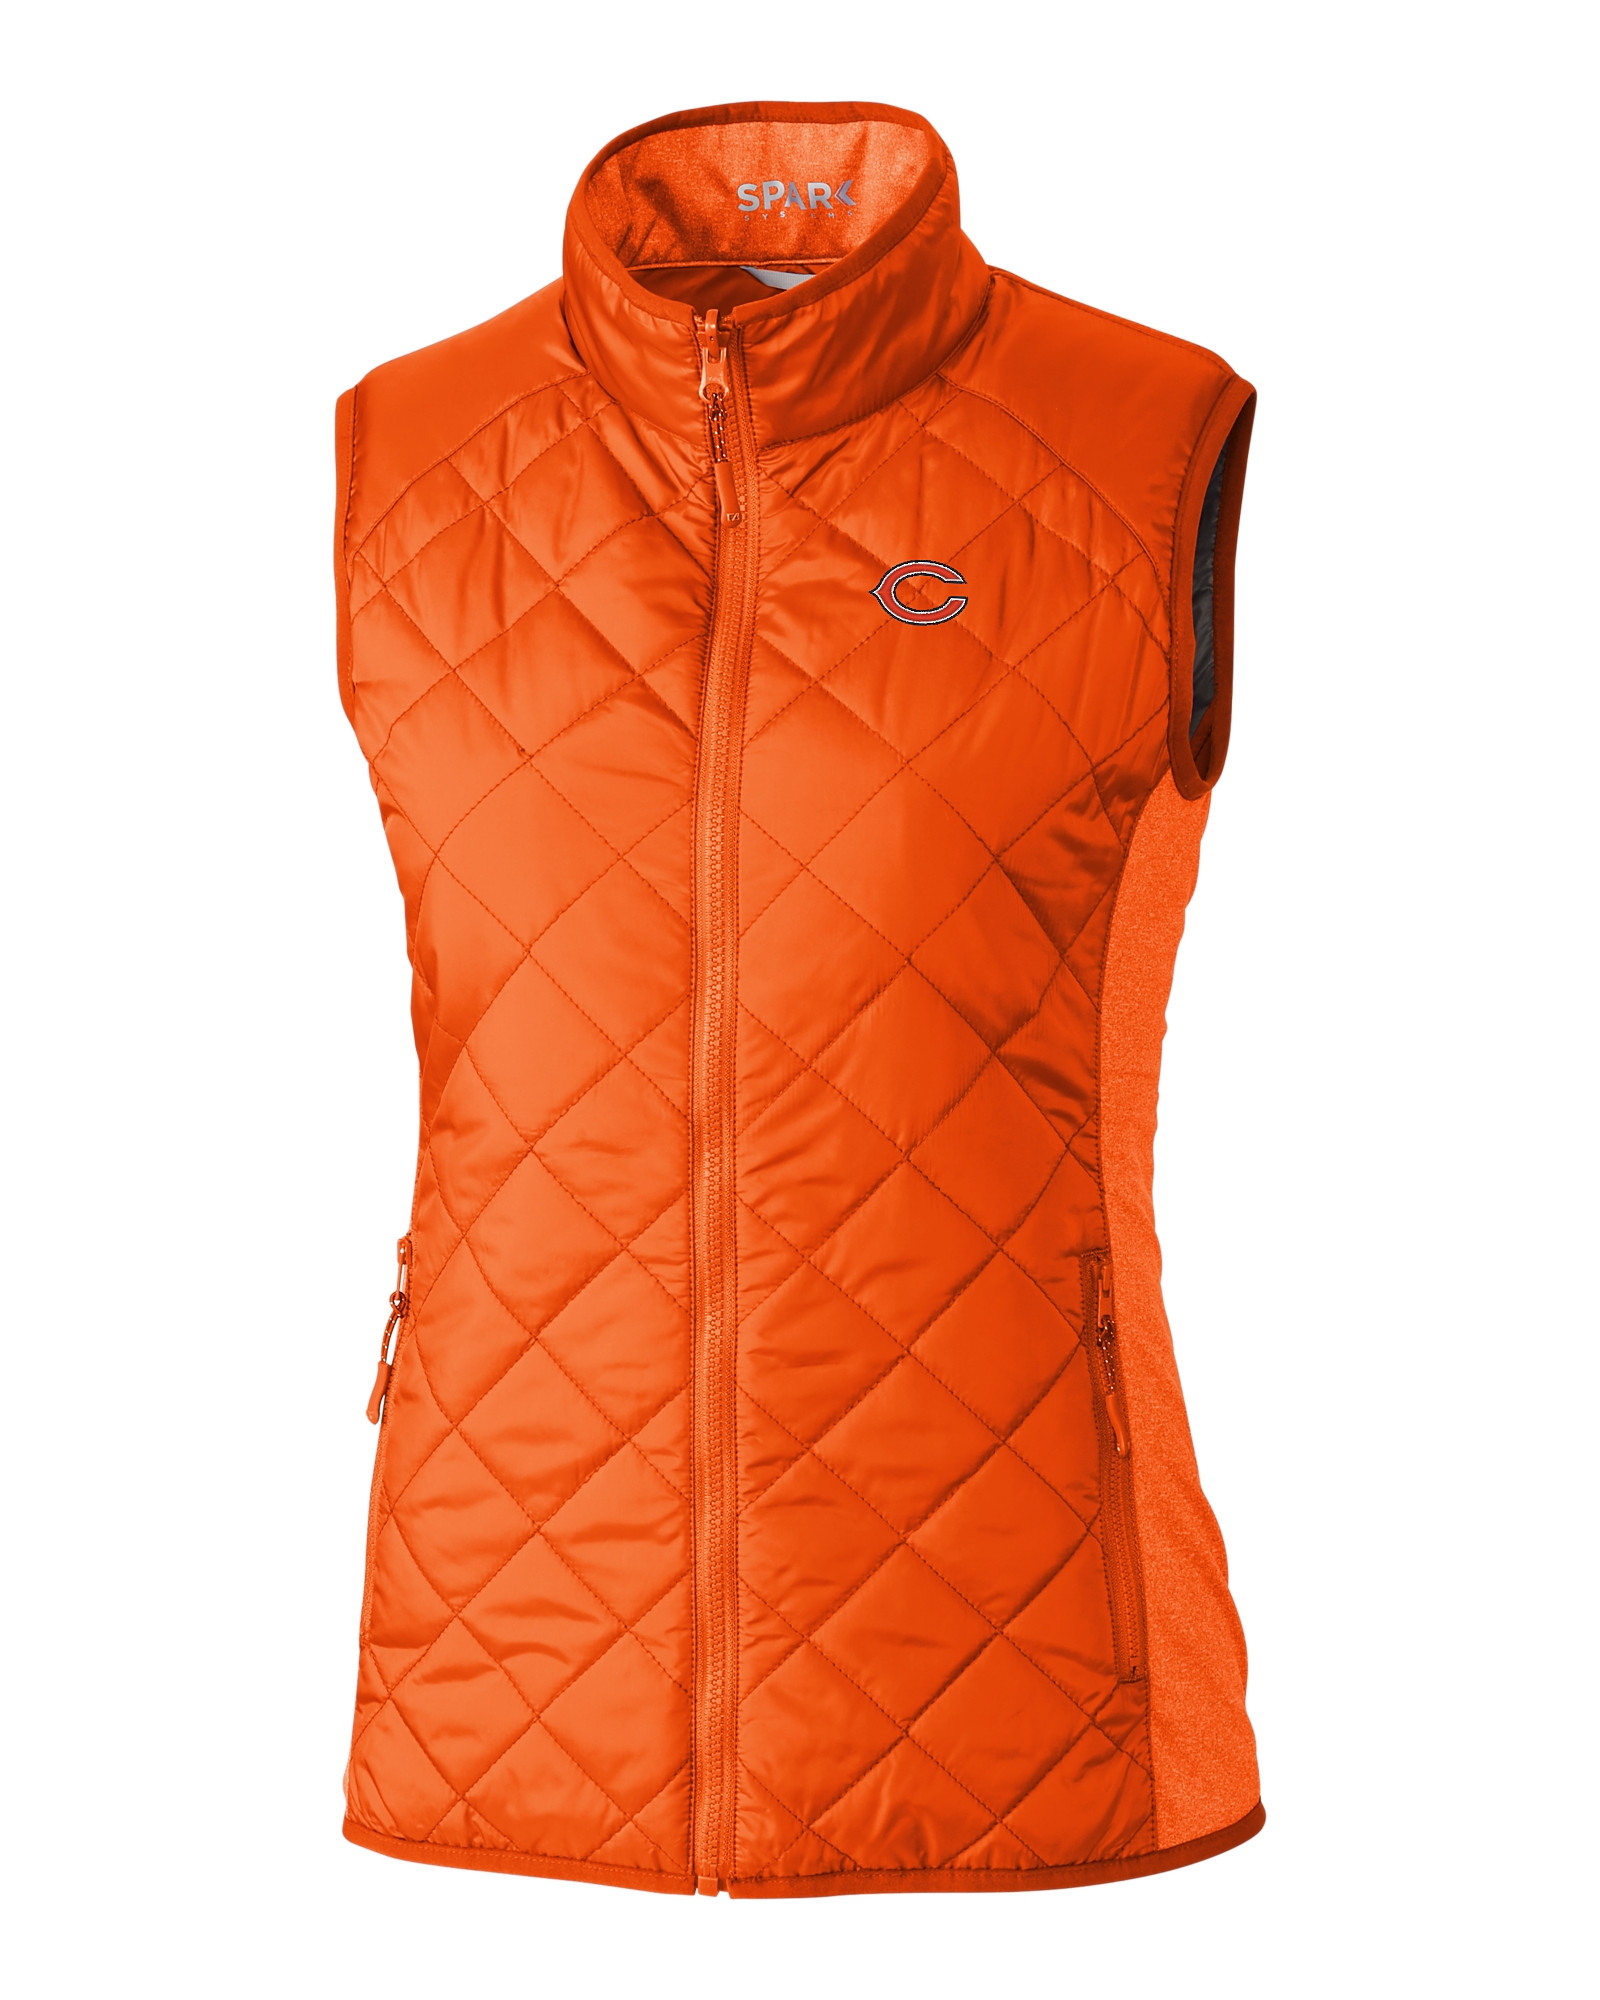 36cd84b6 Chicago Bears Ladies' Sandpoint Quilted Vest